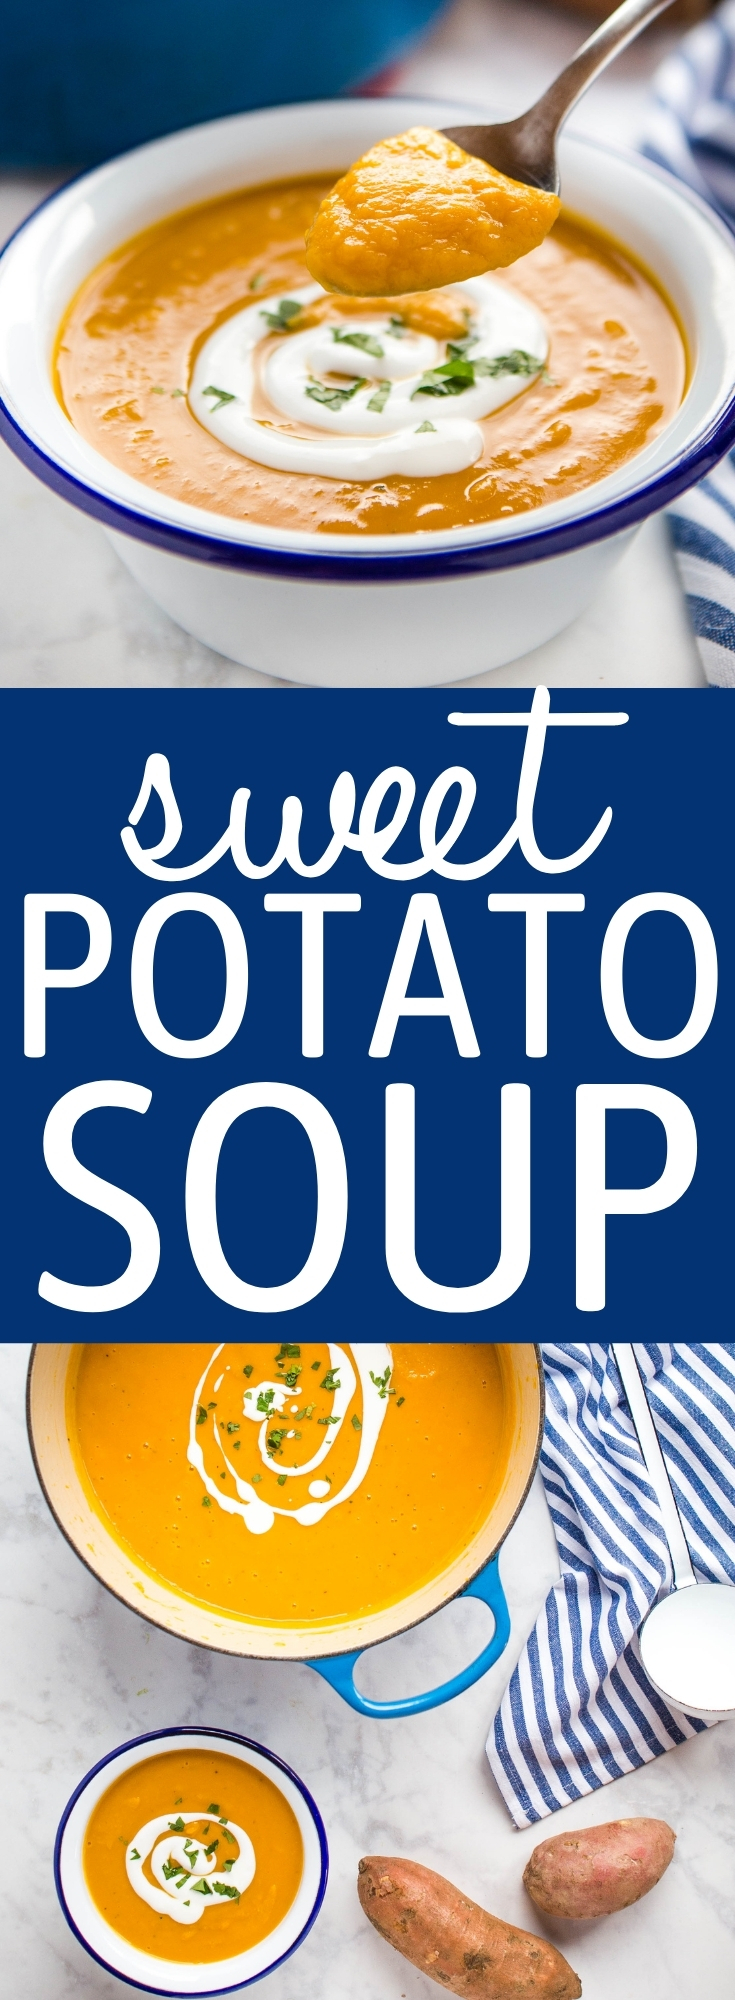 This Sweet Potato Soup is an easy hearty and filling soup, creamy and delicious - made with sweet potatoes, fresh ginger, and coconut milk for the BEST healthy vegan soup for fall and winter! Recipe from thebusybaker.ca #sweetpotato #soup #homemade #vegan #healthy #homemade #creamysoup #homemadesoup #sweetpotatosoup via @busybakerblog